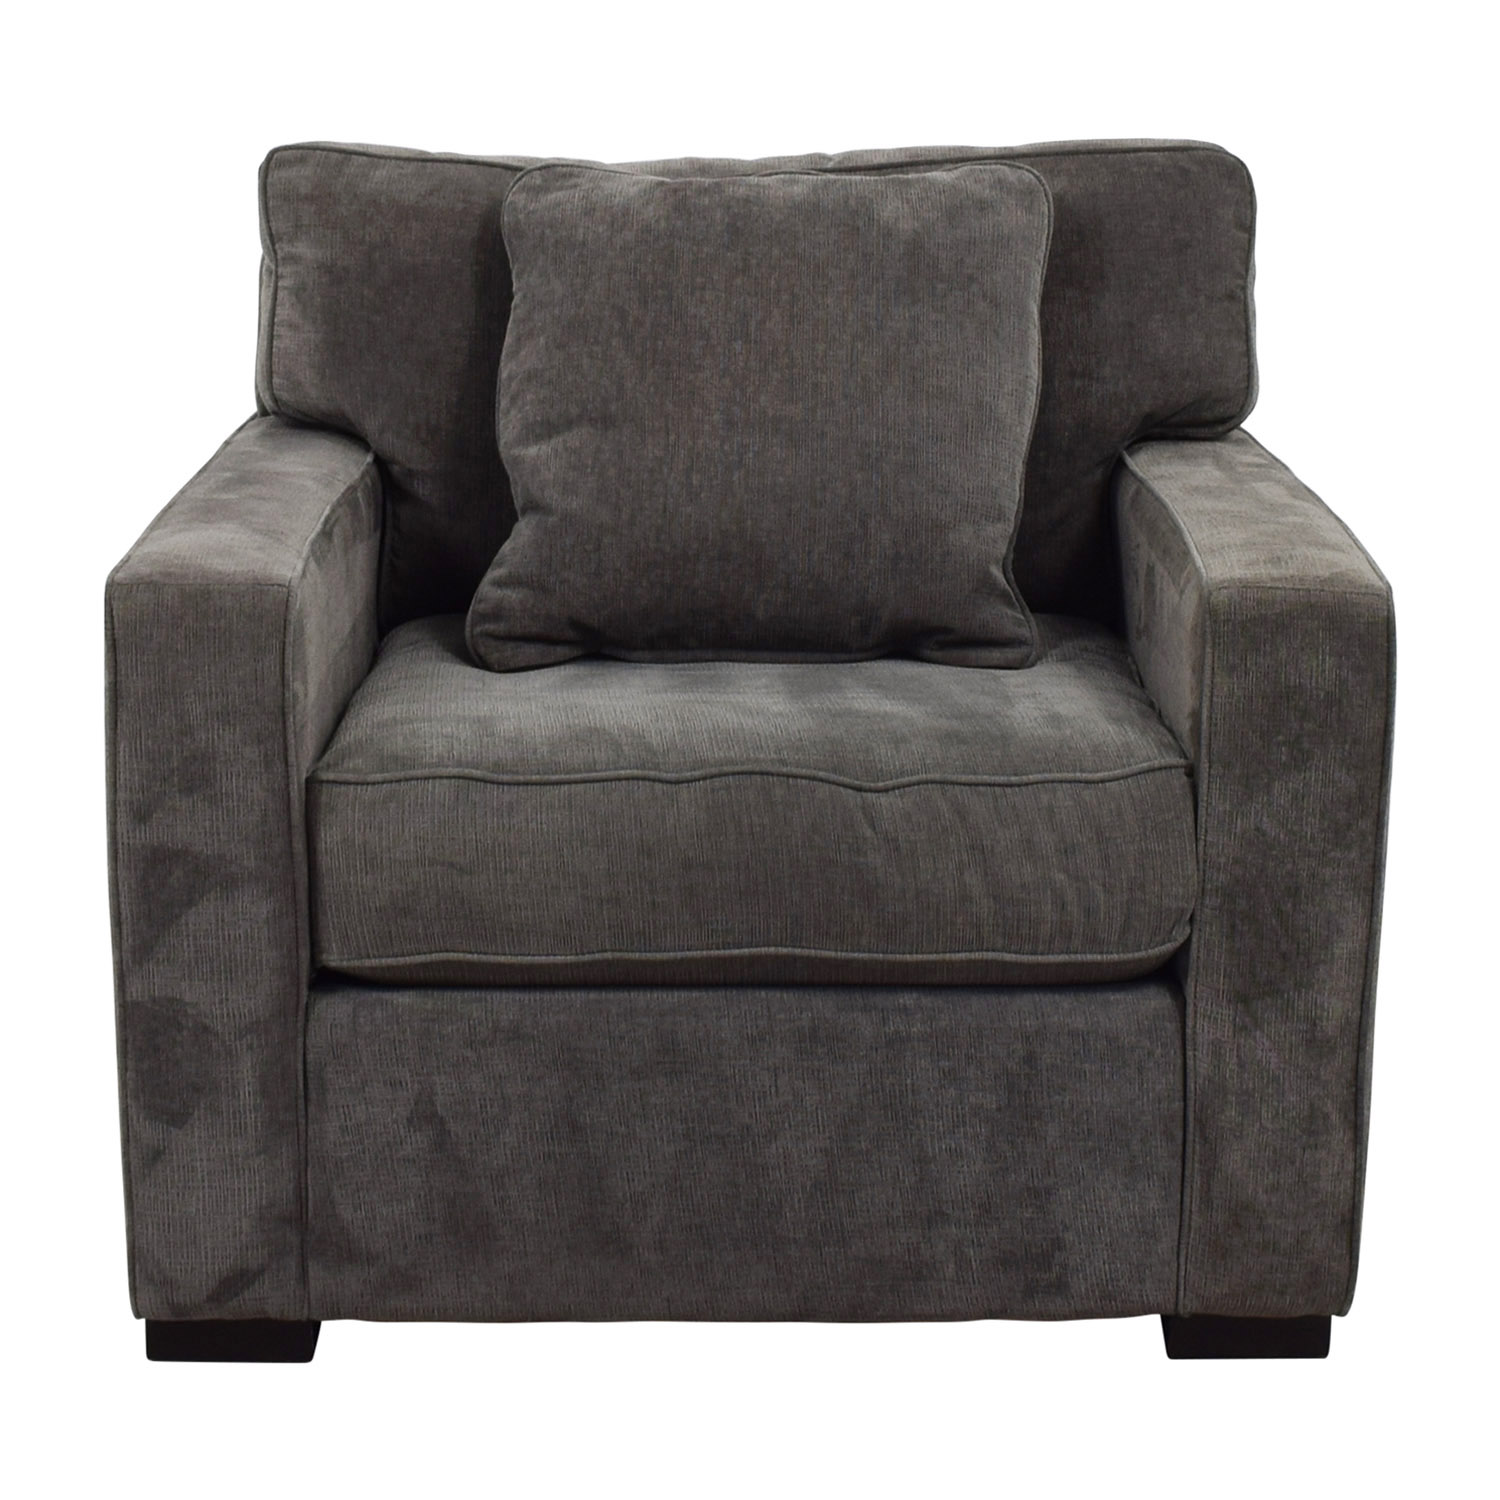 Macys Roselake Accent Chair With Otto: Macy's Macy's Radley Grey Accent Chair / Chairs